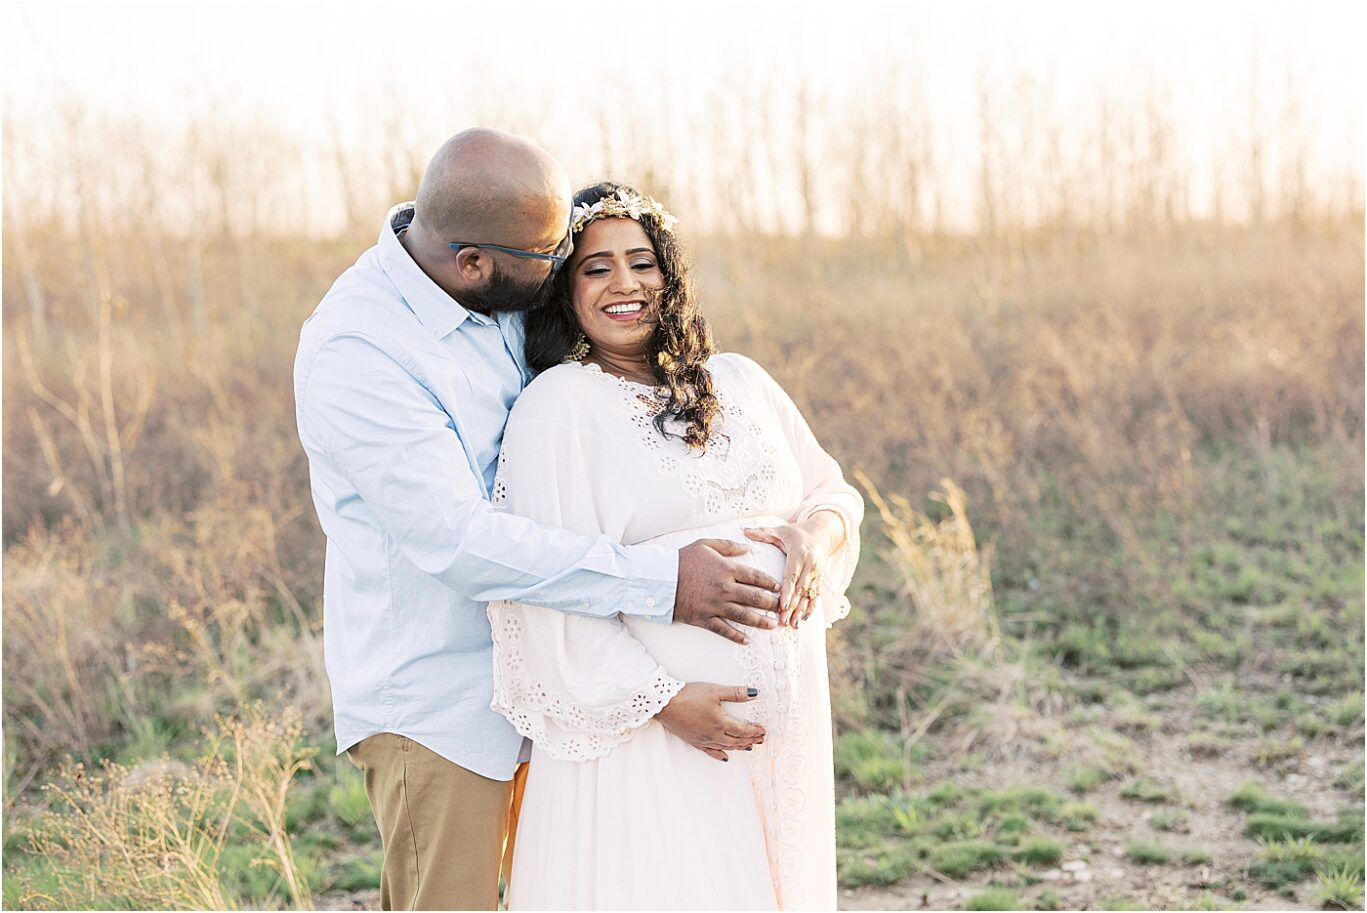 Outdoor maternity session with Natural light photographer in Indy, Lindsay Konopa Photography.